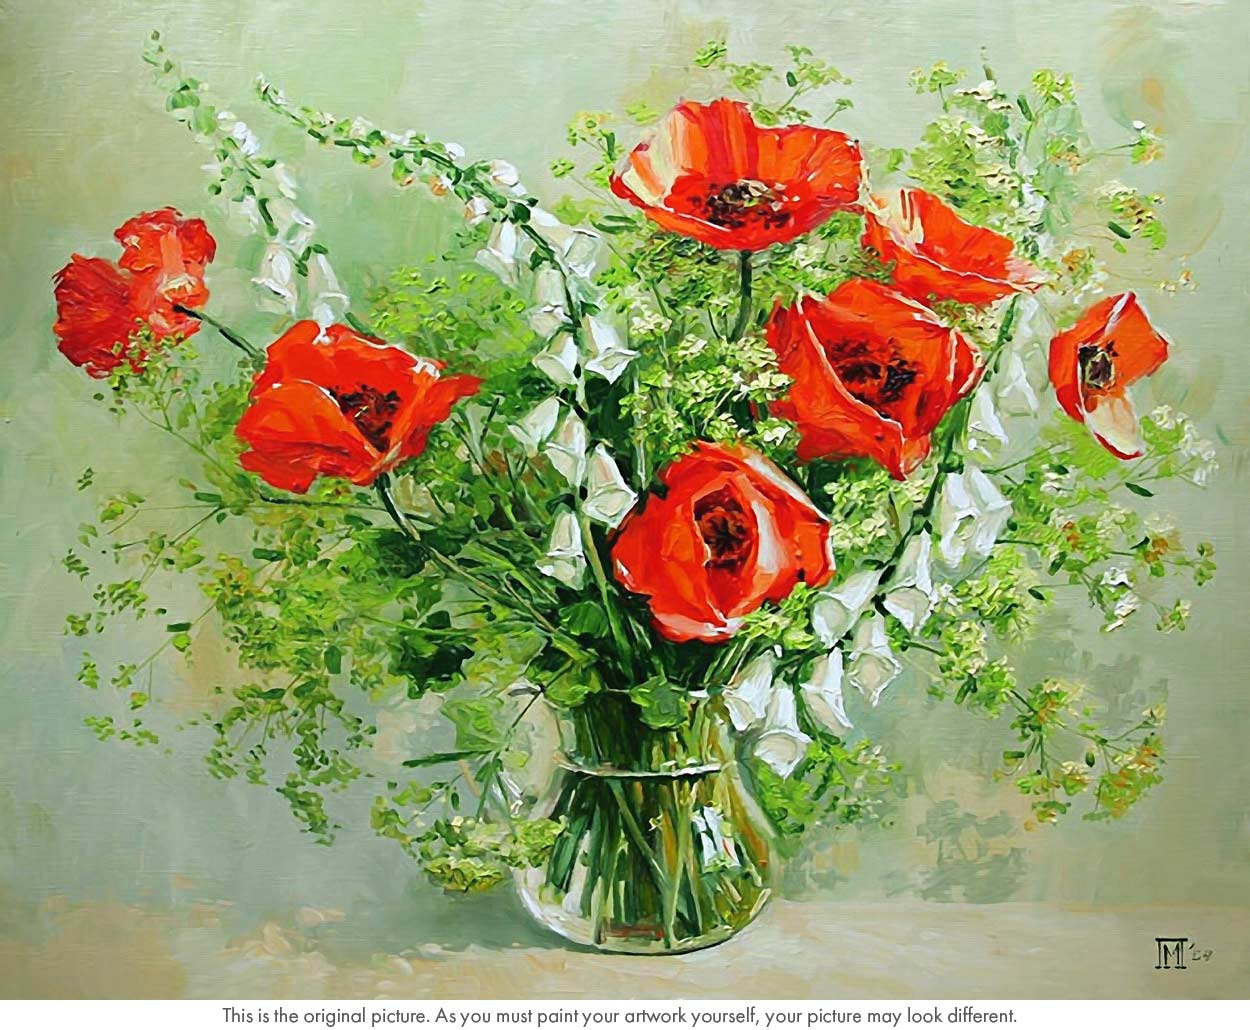 Vase of red poppies flower still life paint by numbers say hello vase of red poppies flower still life paint by numbers original mightylinksfo